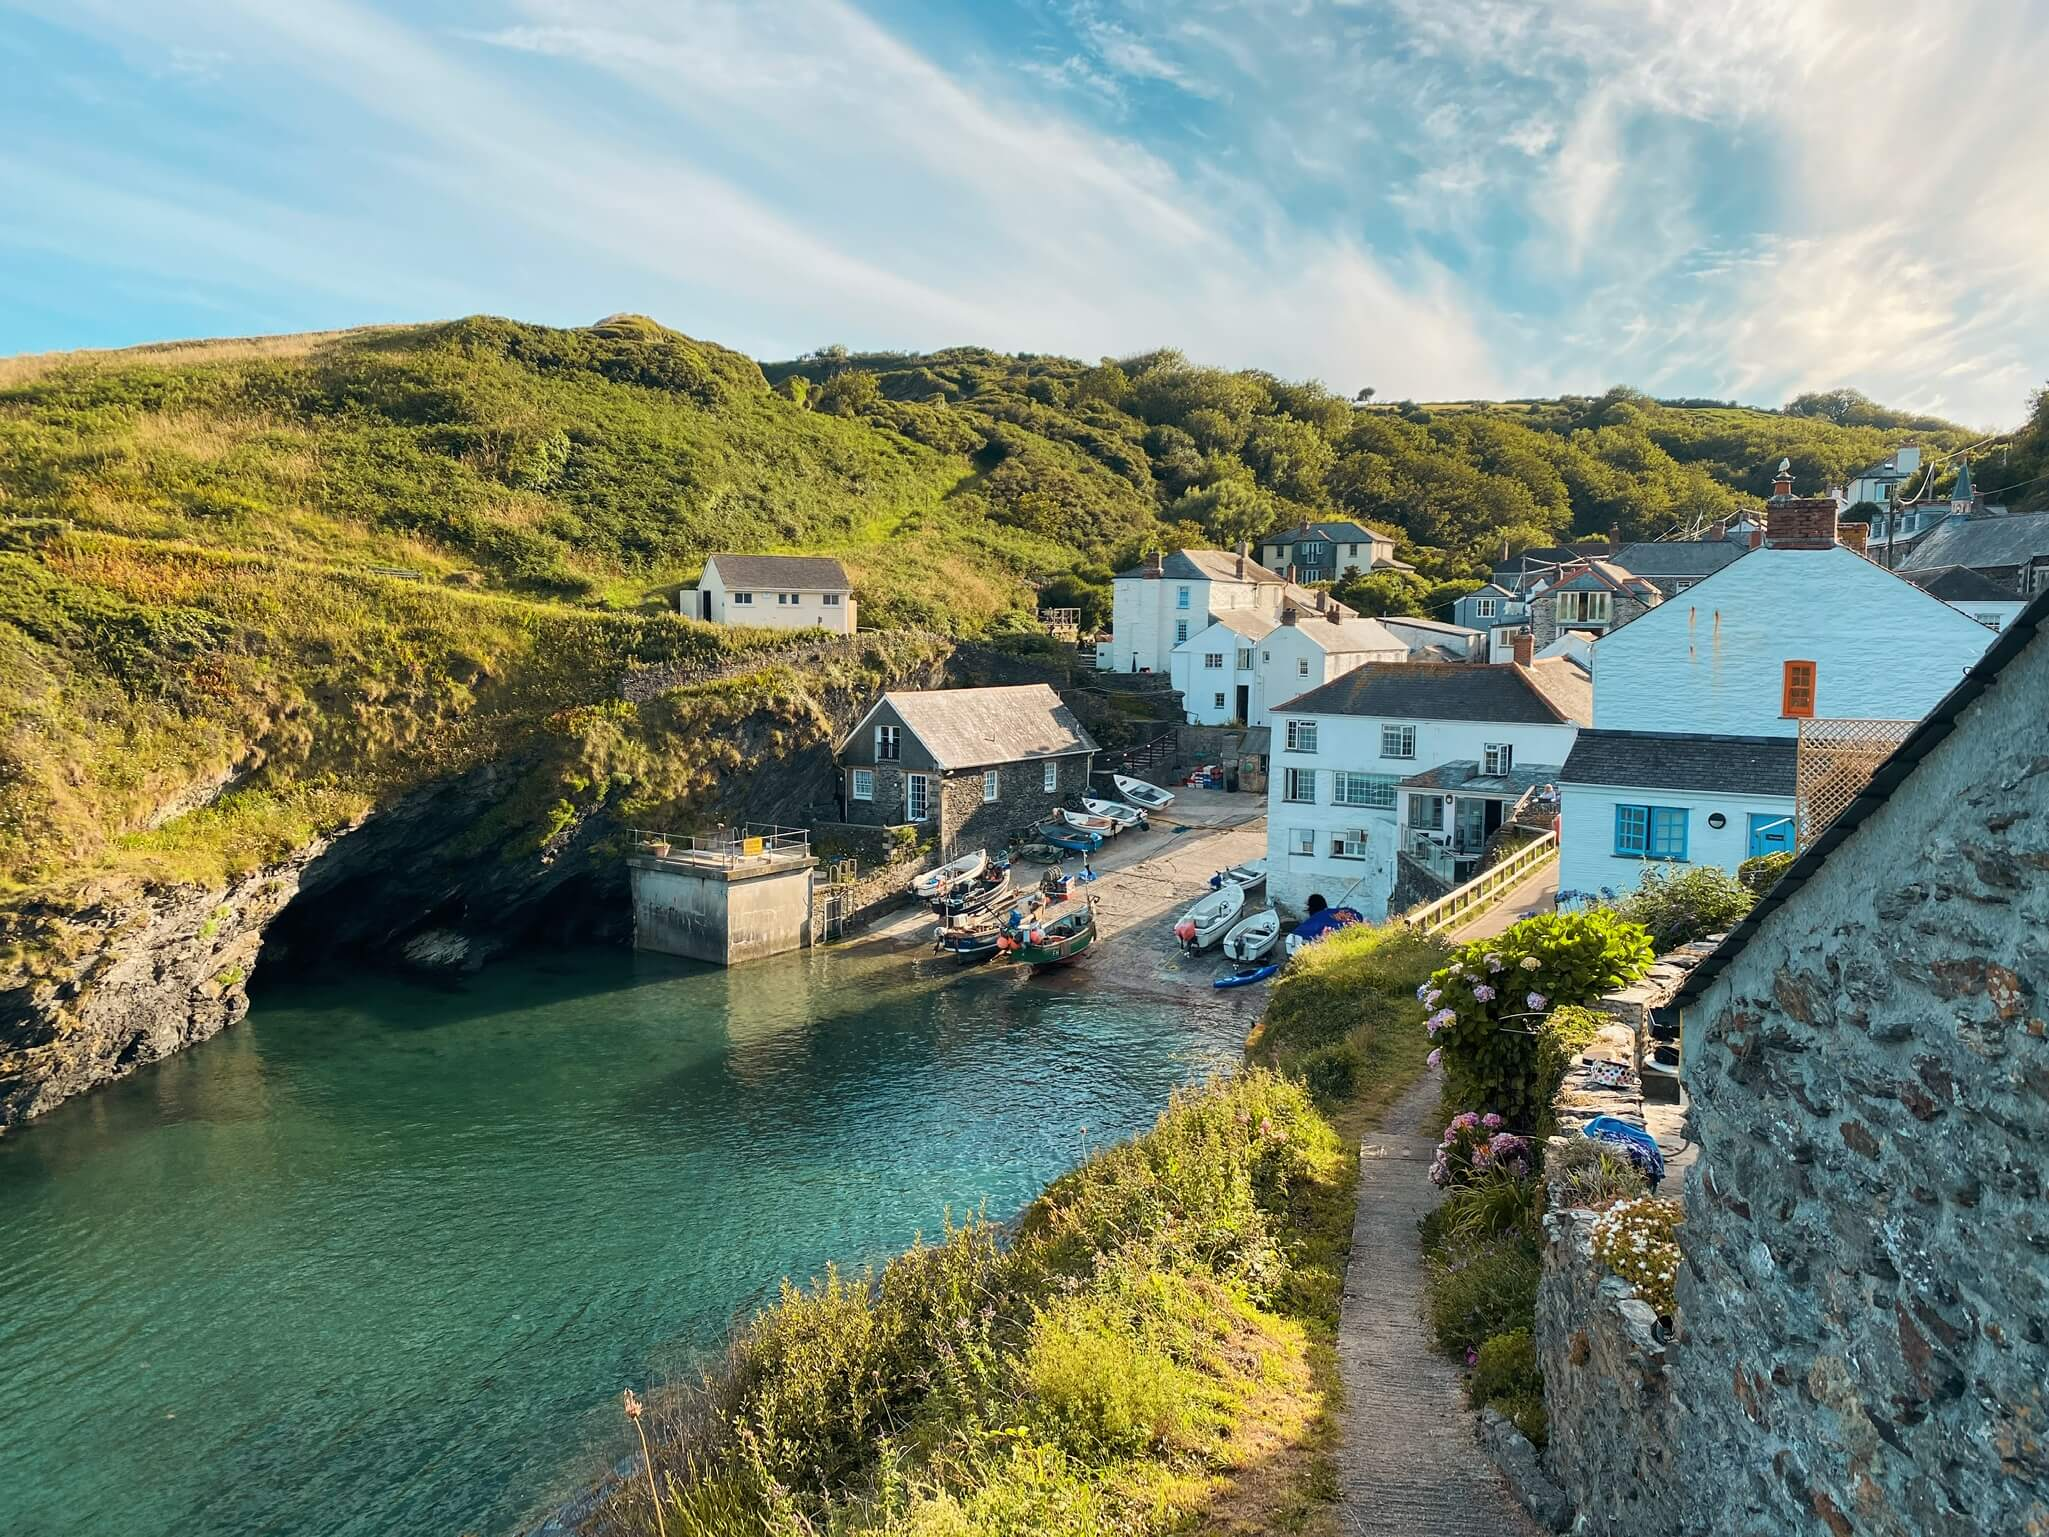 Portloe Cornwall (Where to stay in Cornwall)